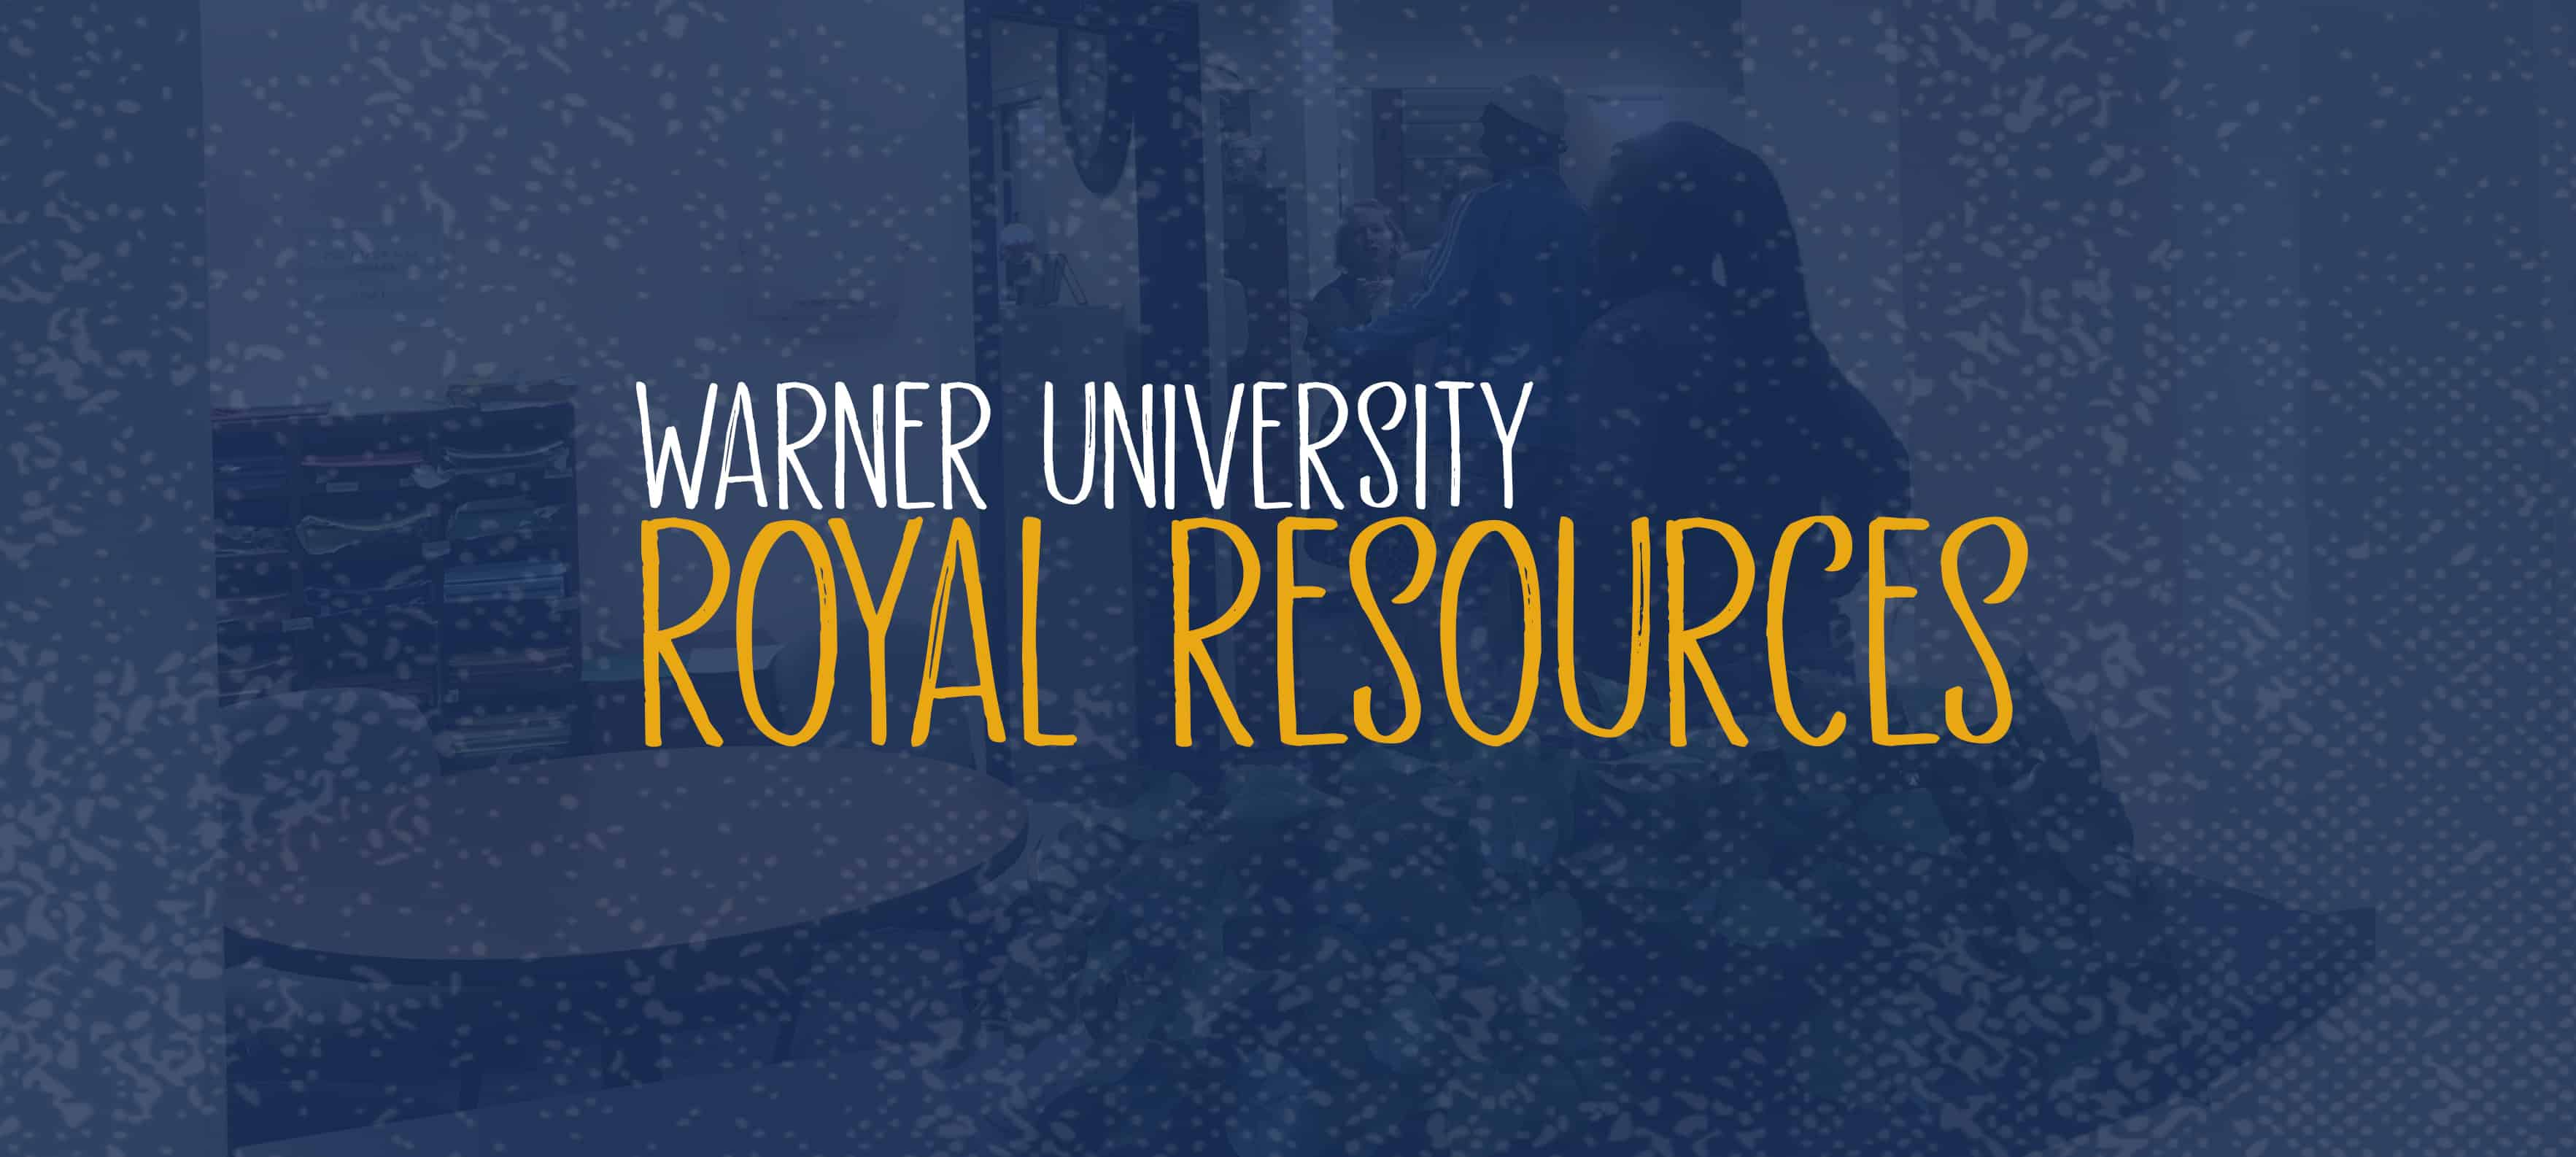 Royal Resources